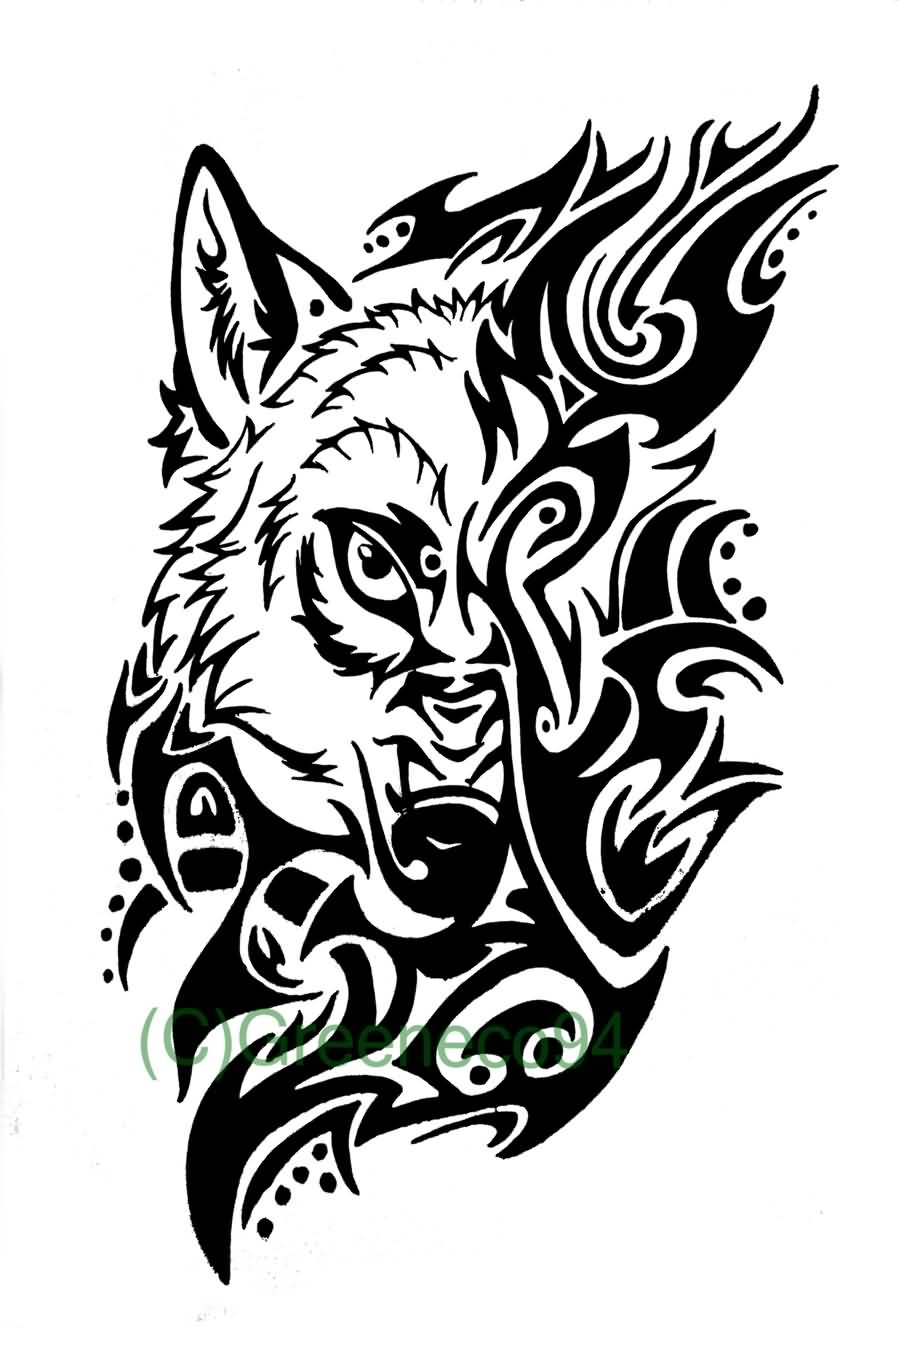 60 Tribal Wolf Tattoos Designs And Ideas intended for dimensions 900 X 1350